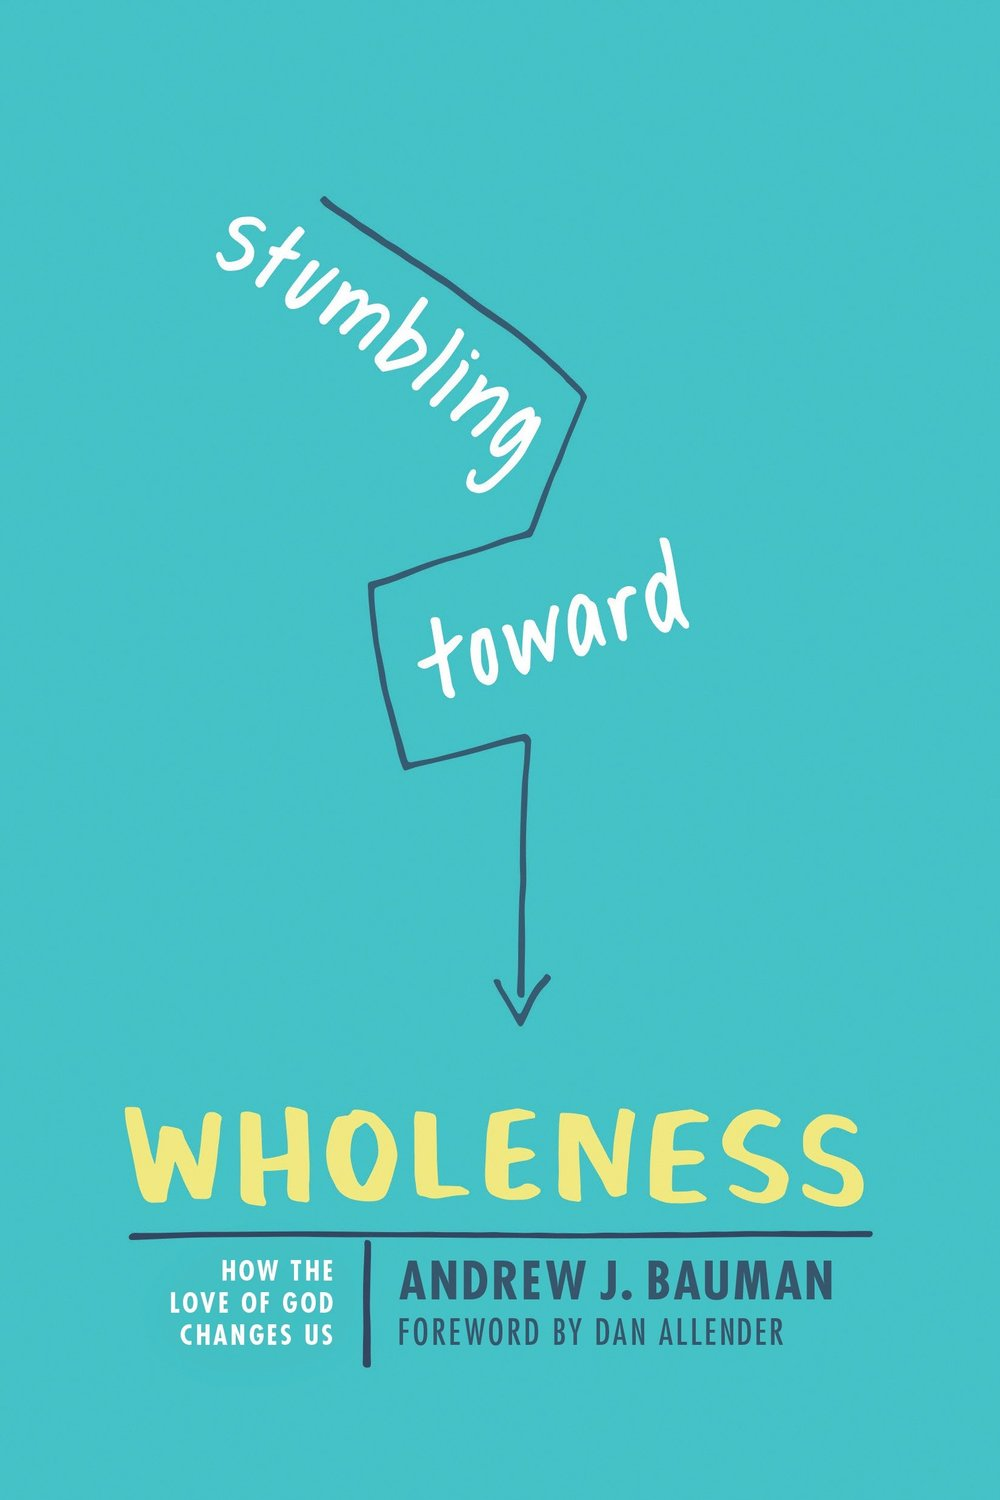 wholeness.jpeg